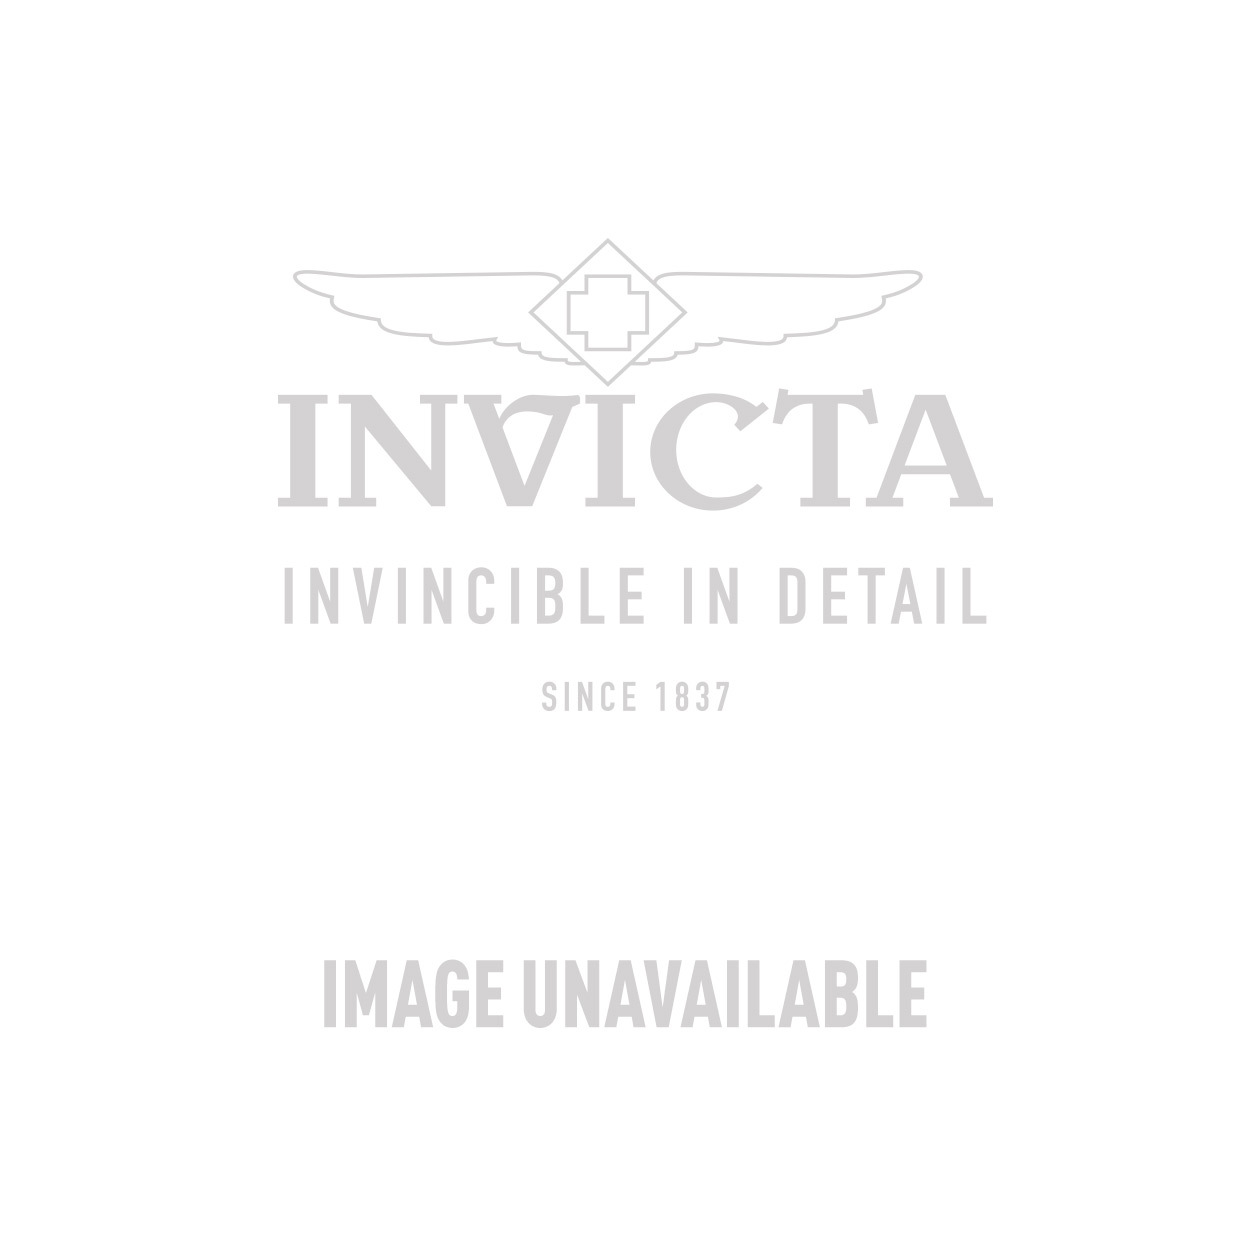 Invicta DNA Swiss Movement Quartz Watch - Stainless Steel case with Black tone Silicone band - Model 10407